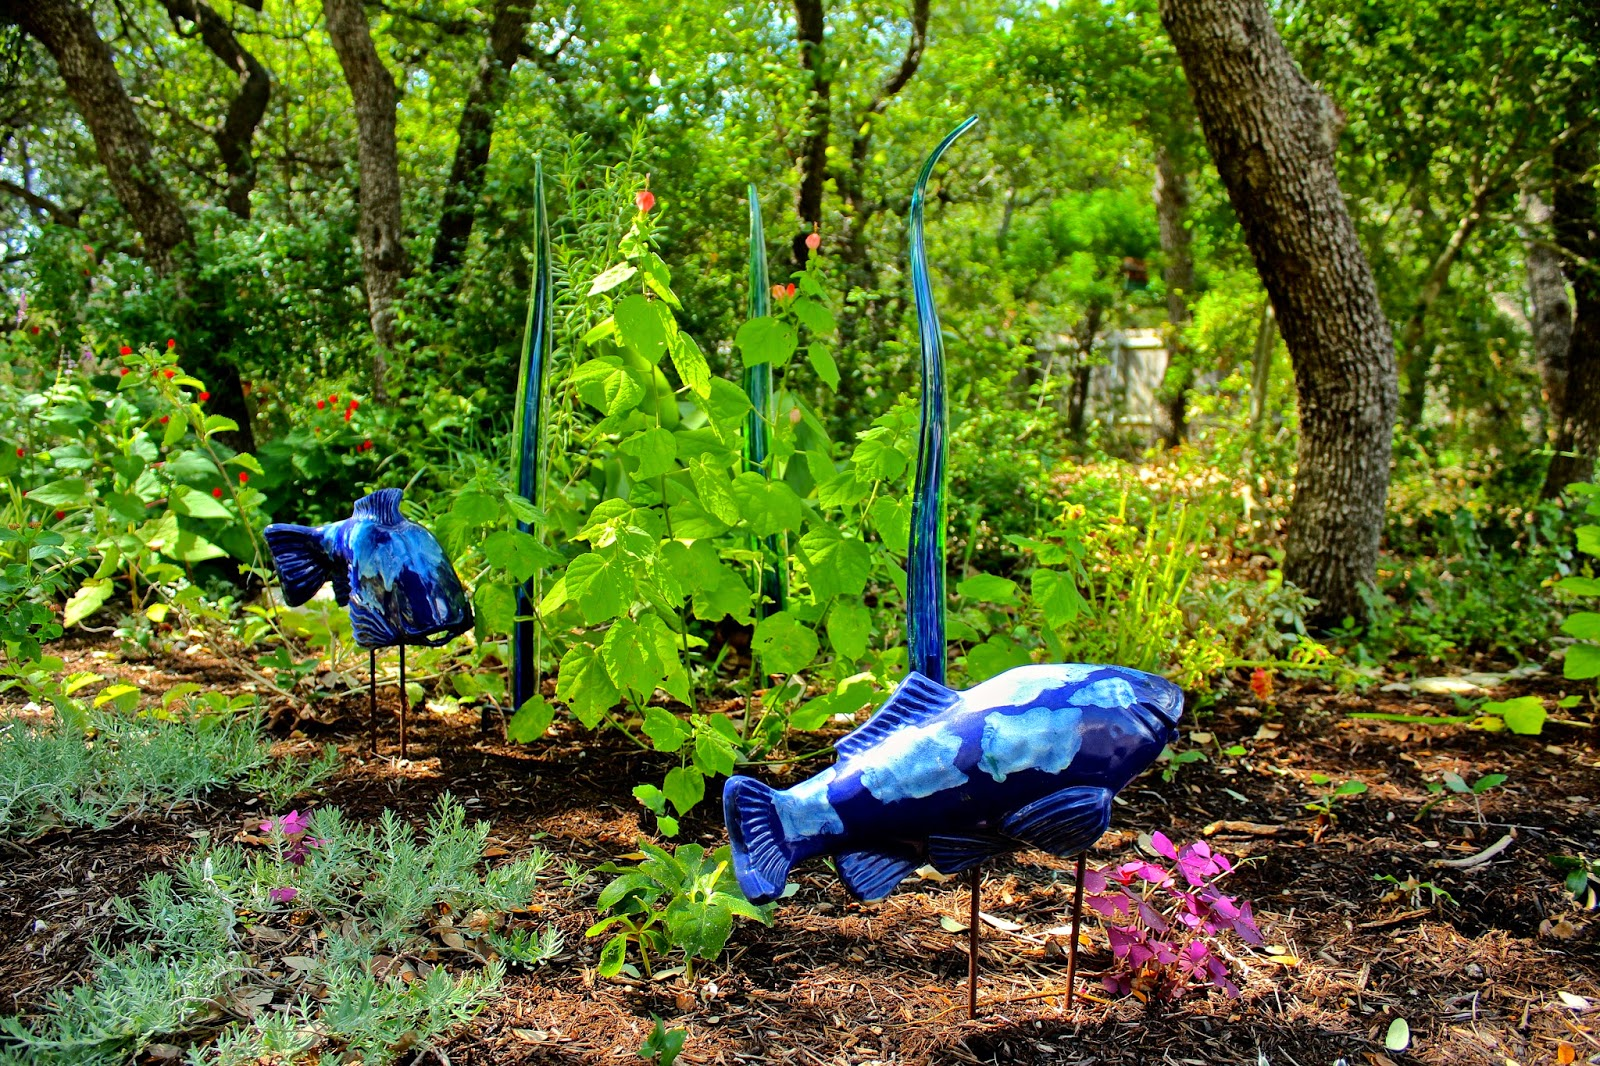 I Recently Made A Return Trip To The Arbor Gate Nursery In Tomball To  Collect Some Of Their Wonderful Garden Art. I Came Home With Two Ceramic  Fish And Two ...